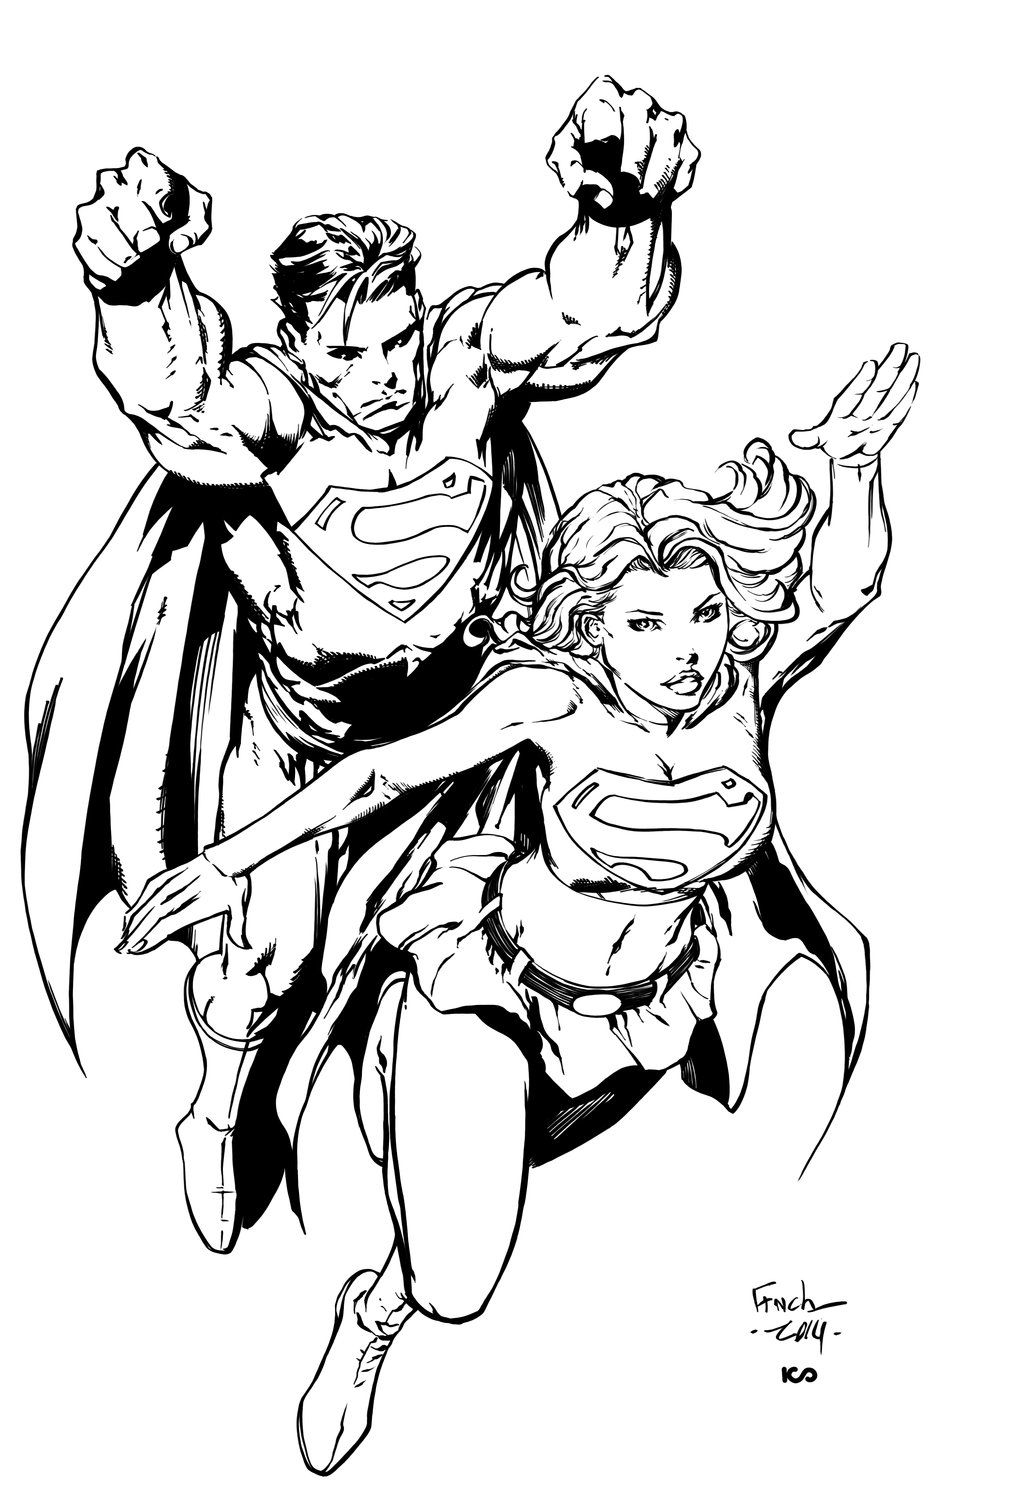 Superman & Supergirl by David Finch | Comics | Pinterest